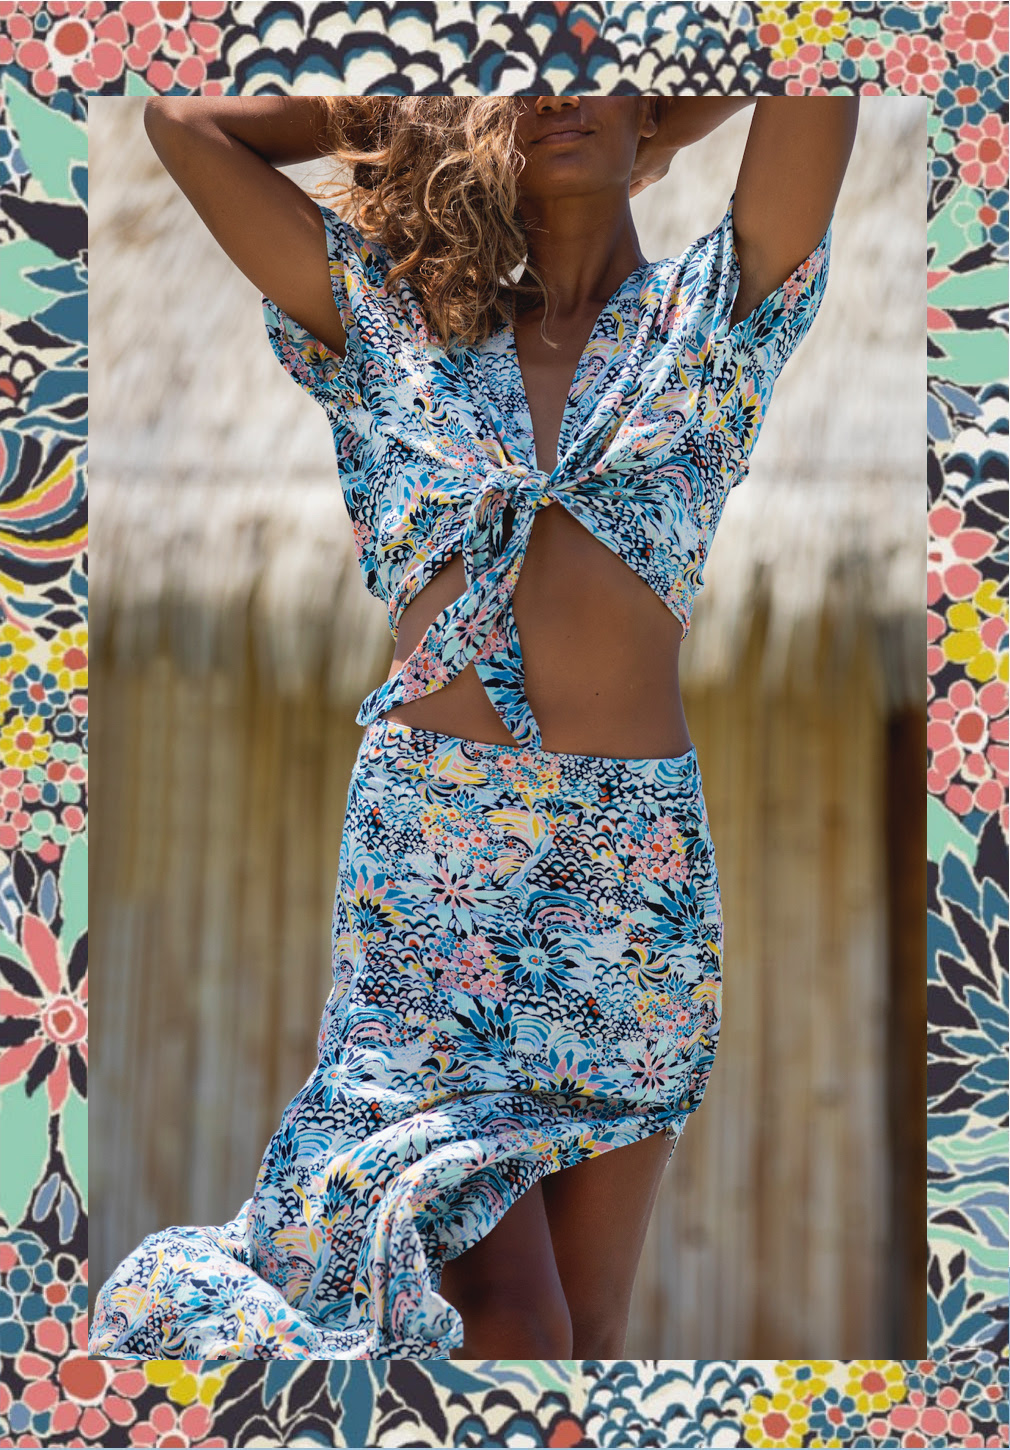 A piece from the Roxy x Liberty Fabrics collaboration inspired by coral reefs